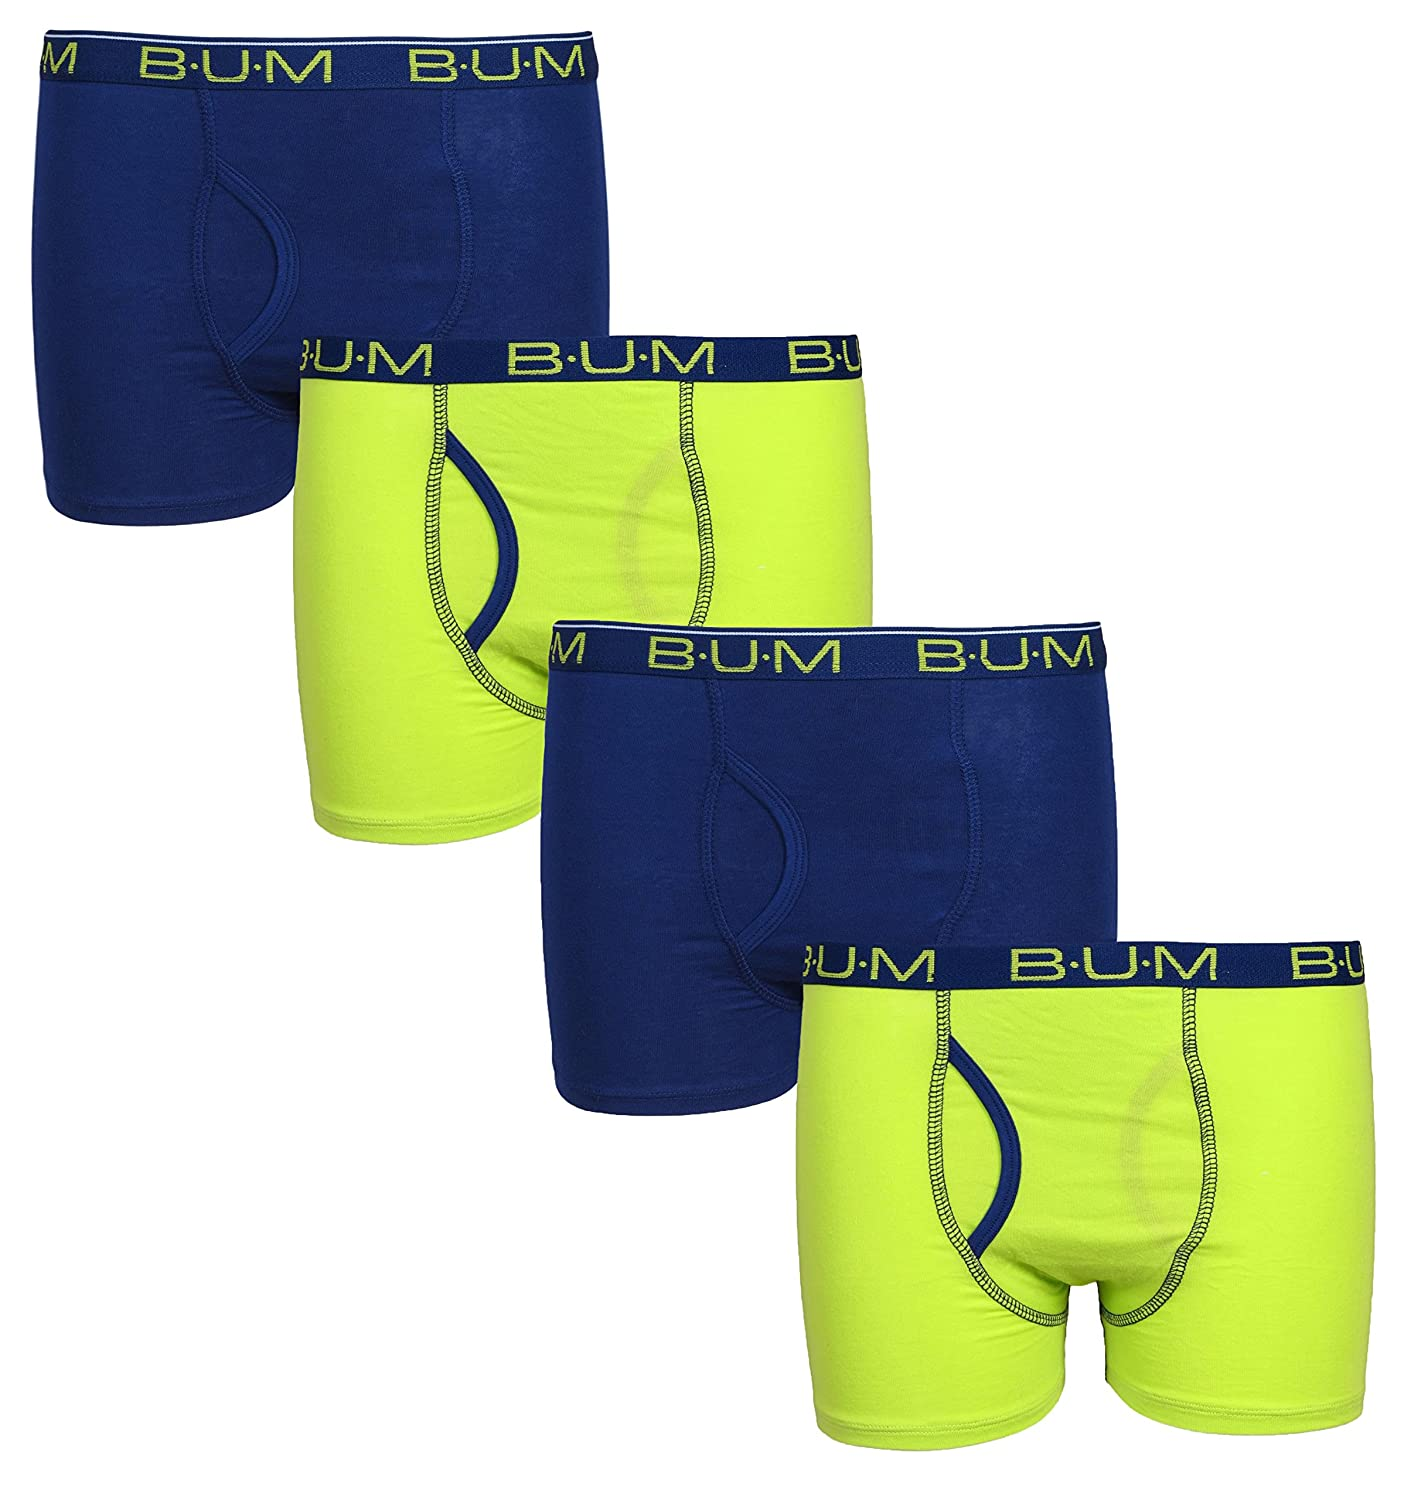 B.U.M. Equipment Boys 4 Pack Cotton Spandex Stretch Underwear Boxer Briefs (More Colors Available)